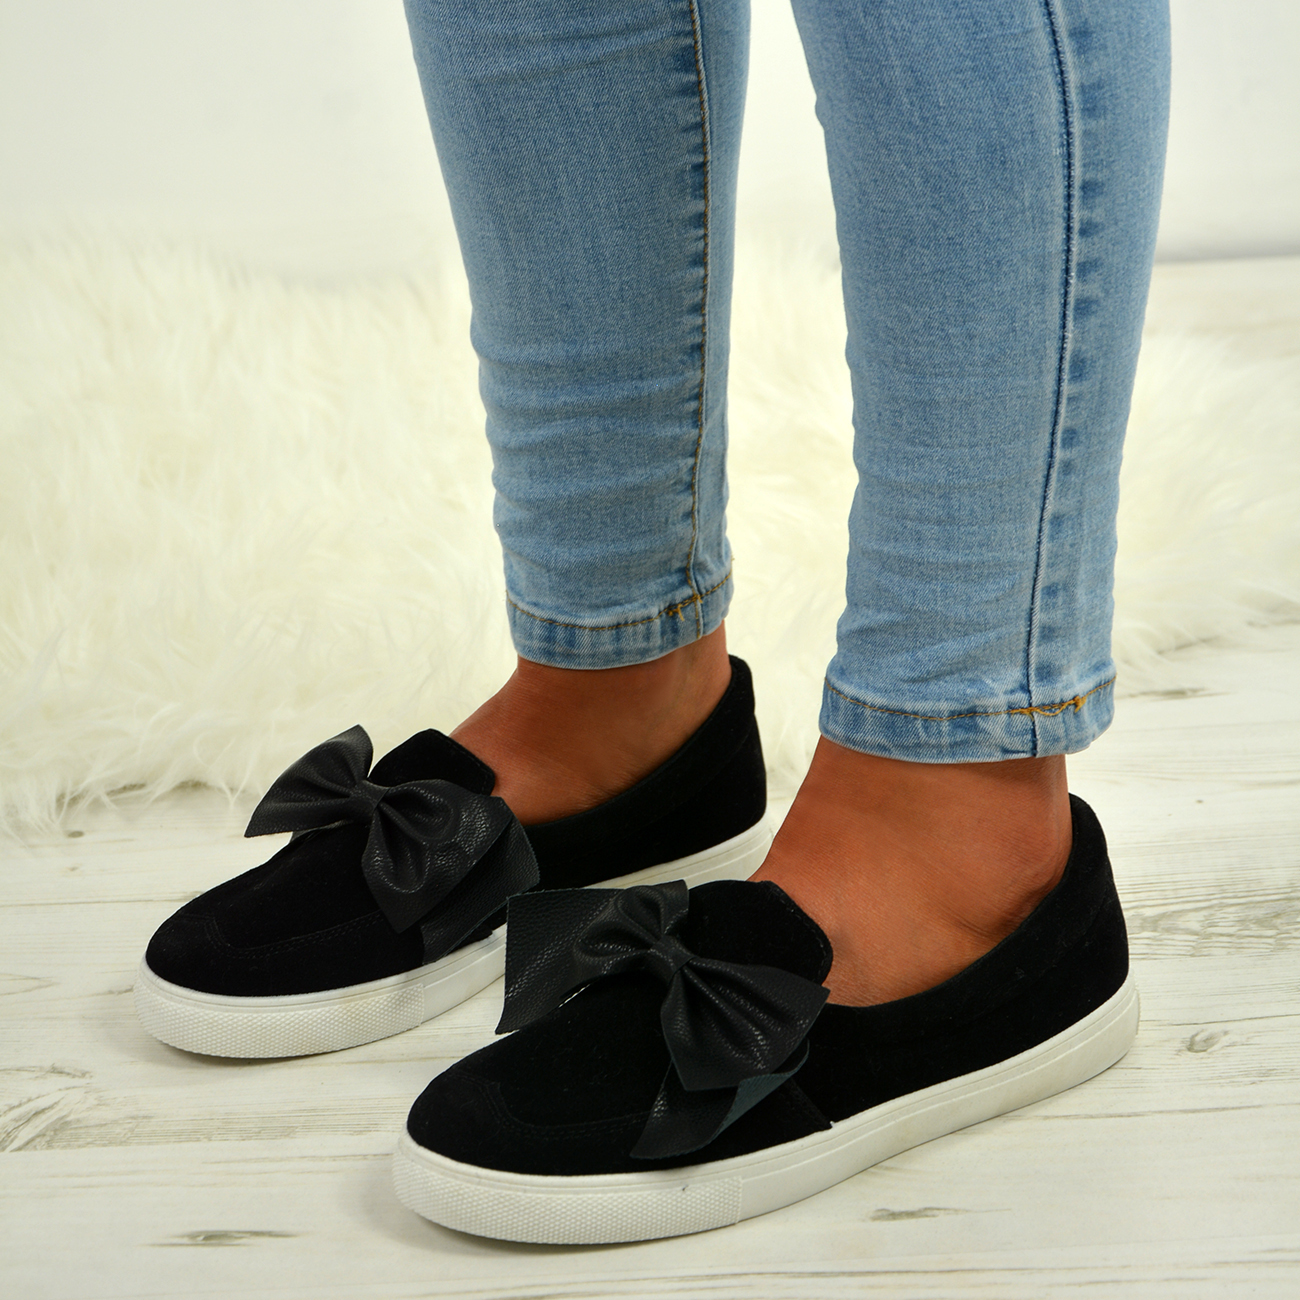 d5d755a88e08 LADIES WOMENS FLAT SNEAKERS BOW COMFY SLIP ON TRAINERS PLIMSOLLS ...